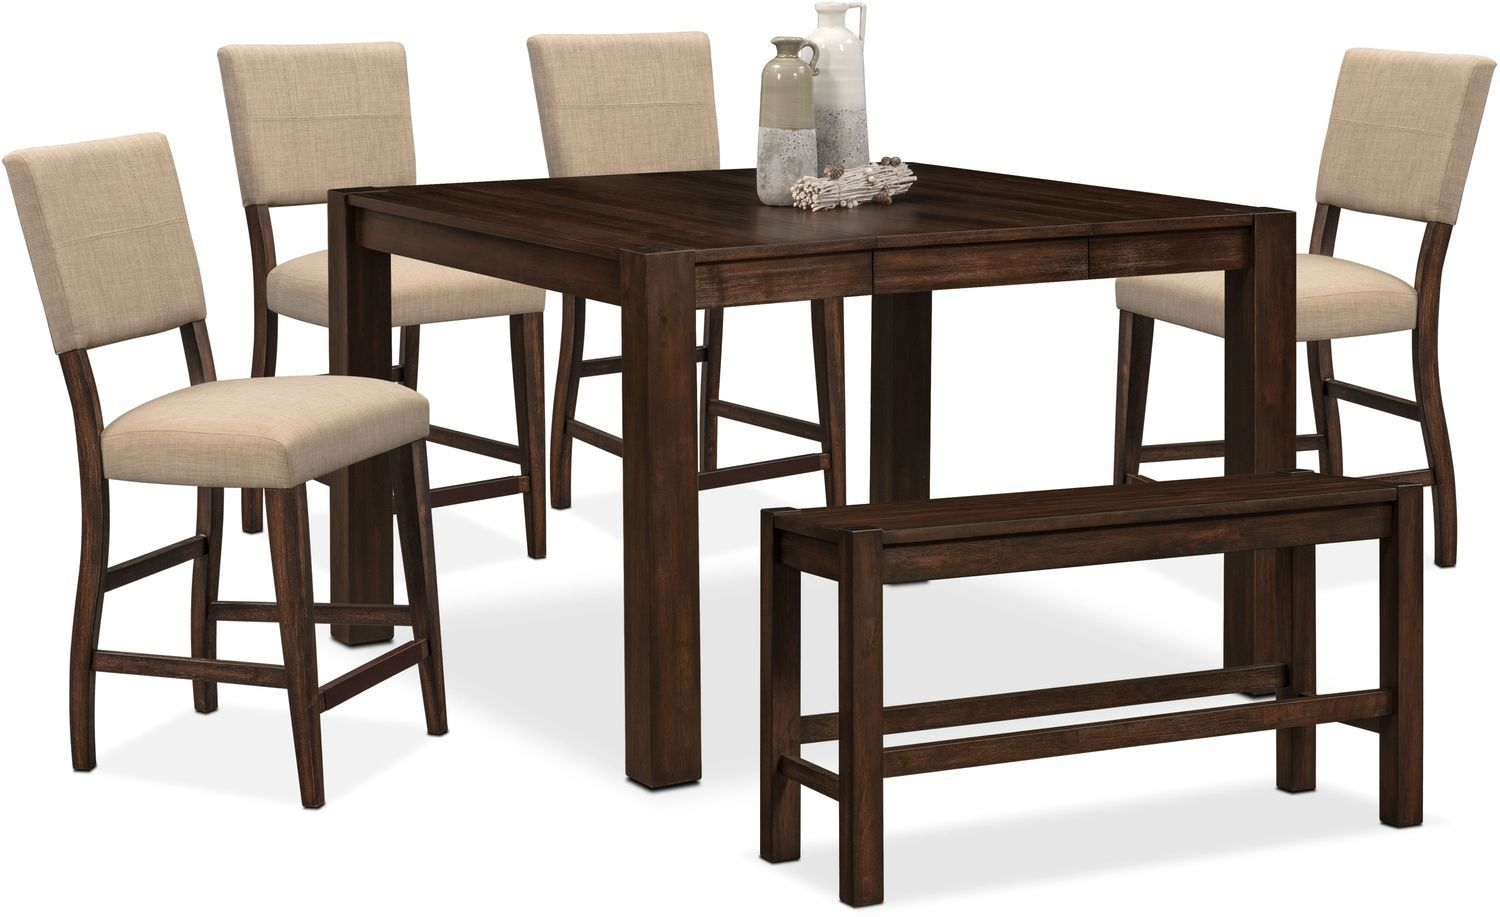 Astonishing Tribeca Counter Height Table 4 Upholstered Side Chairs And Bralicious Painted Fabric Chair Ideas Braliciousco